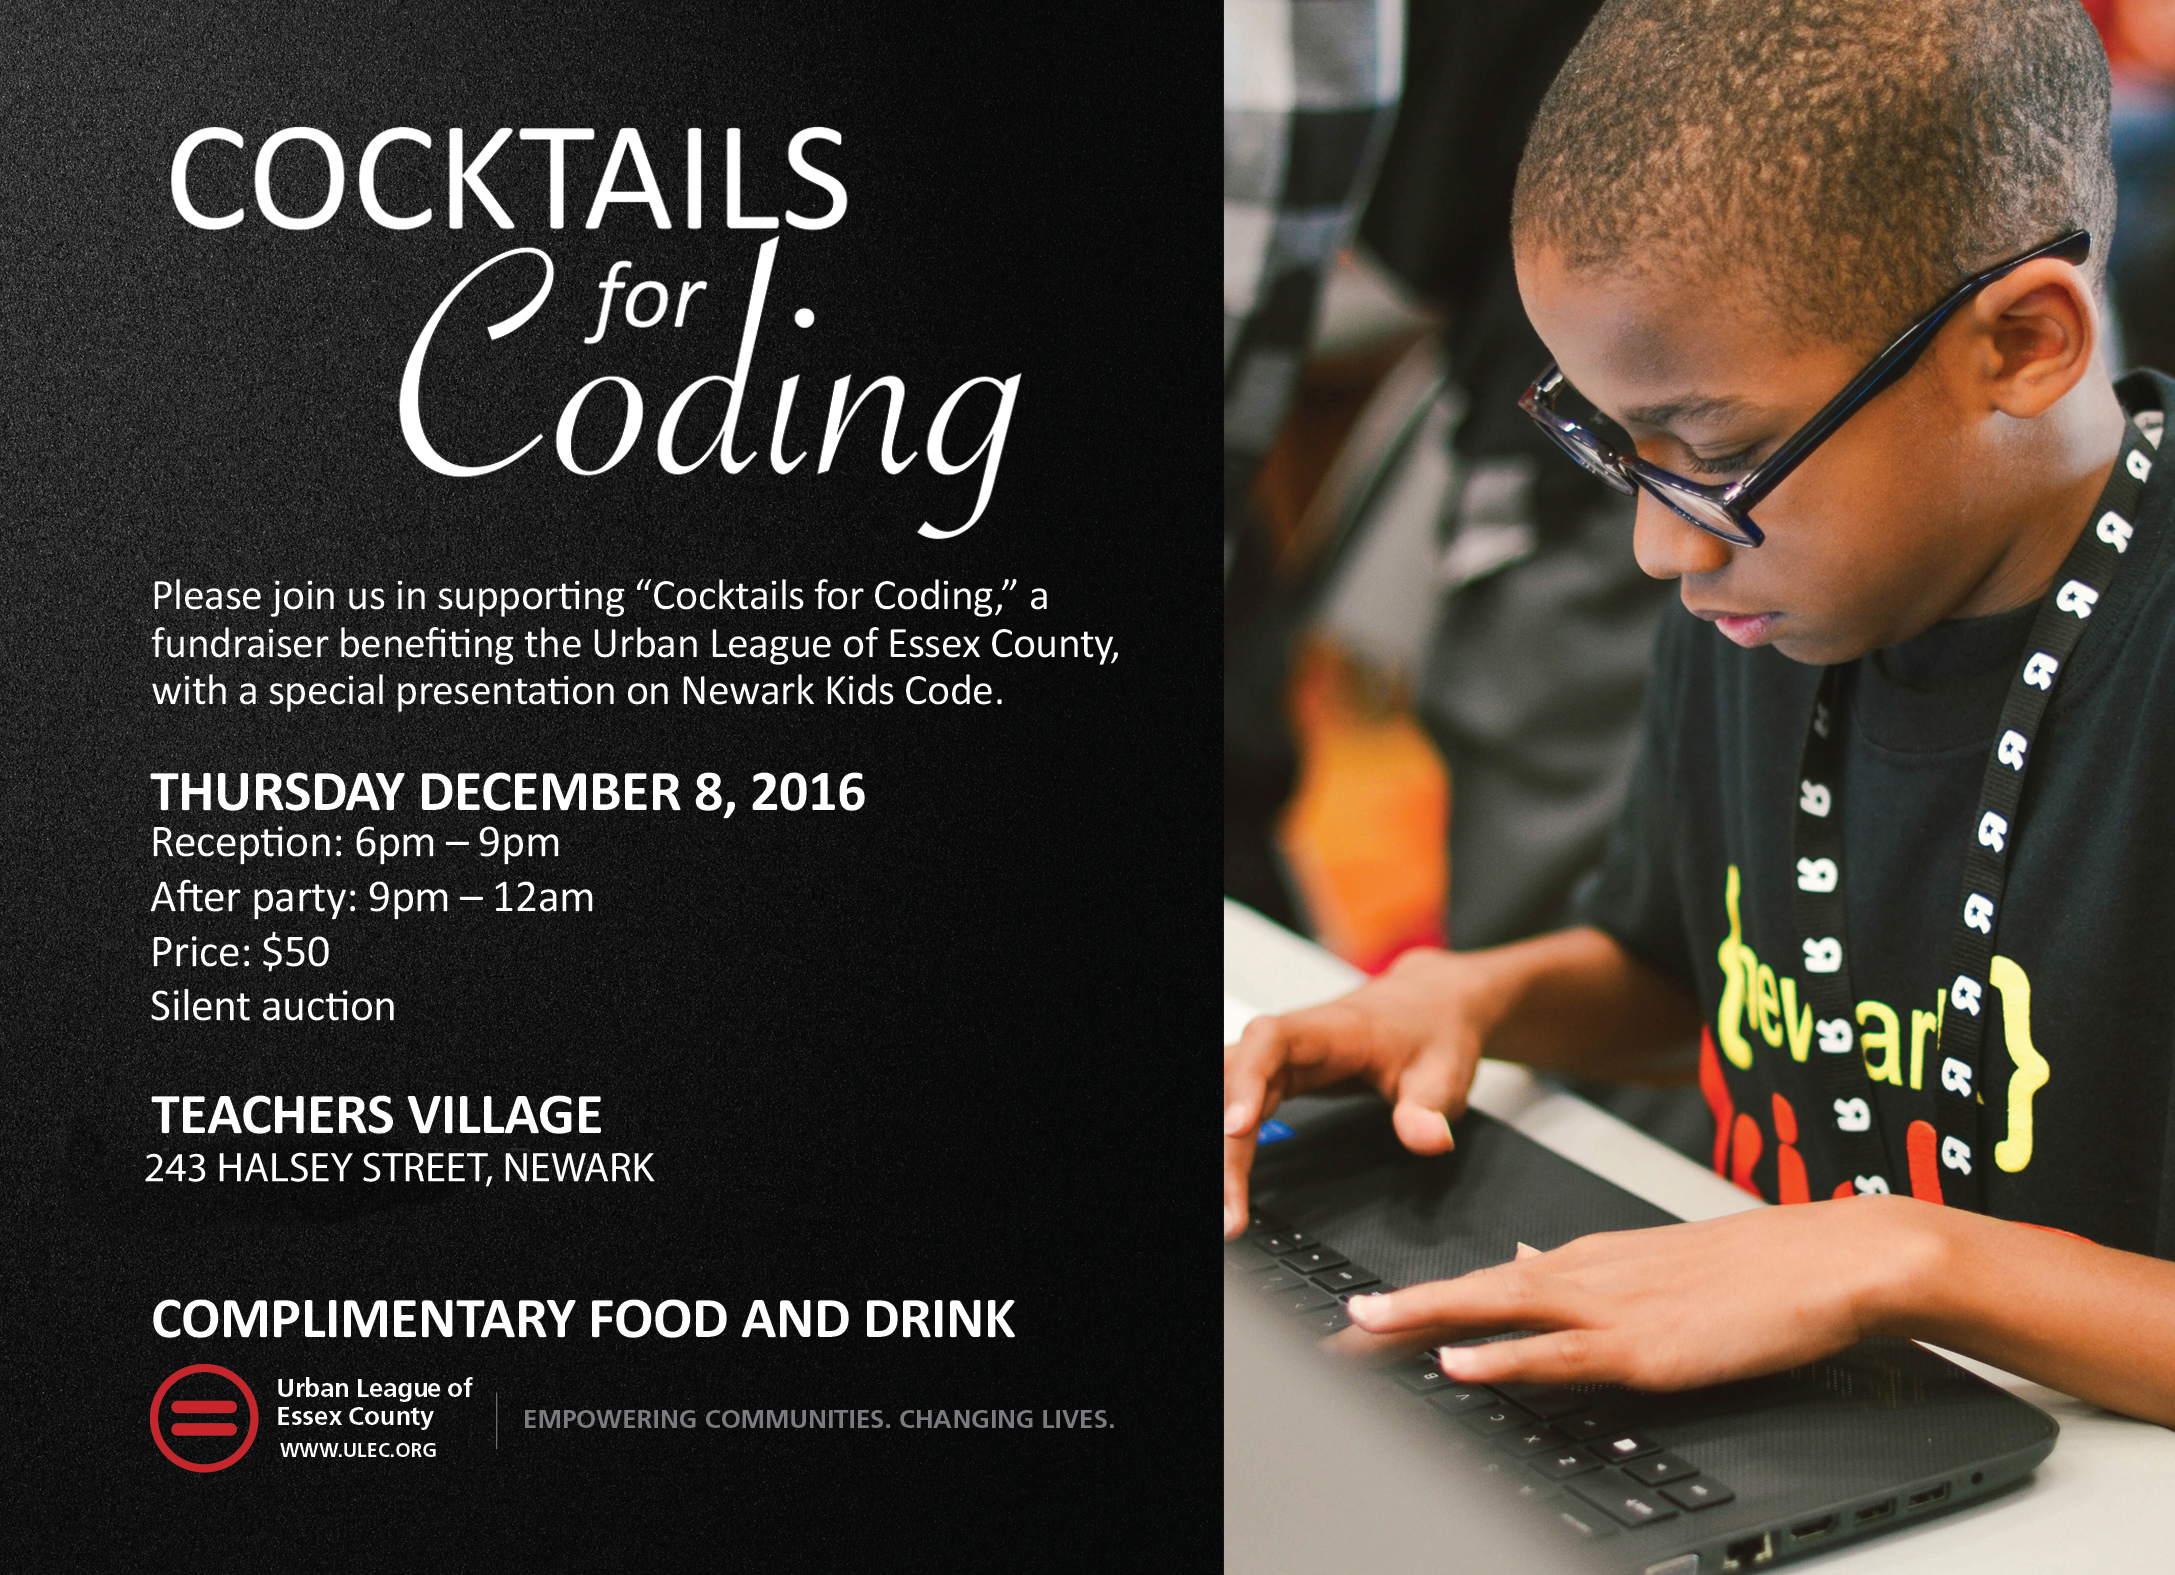 Cocktails for Coding